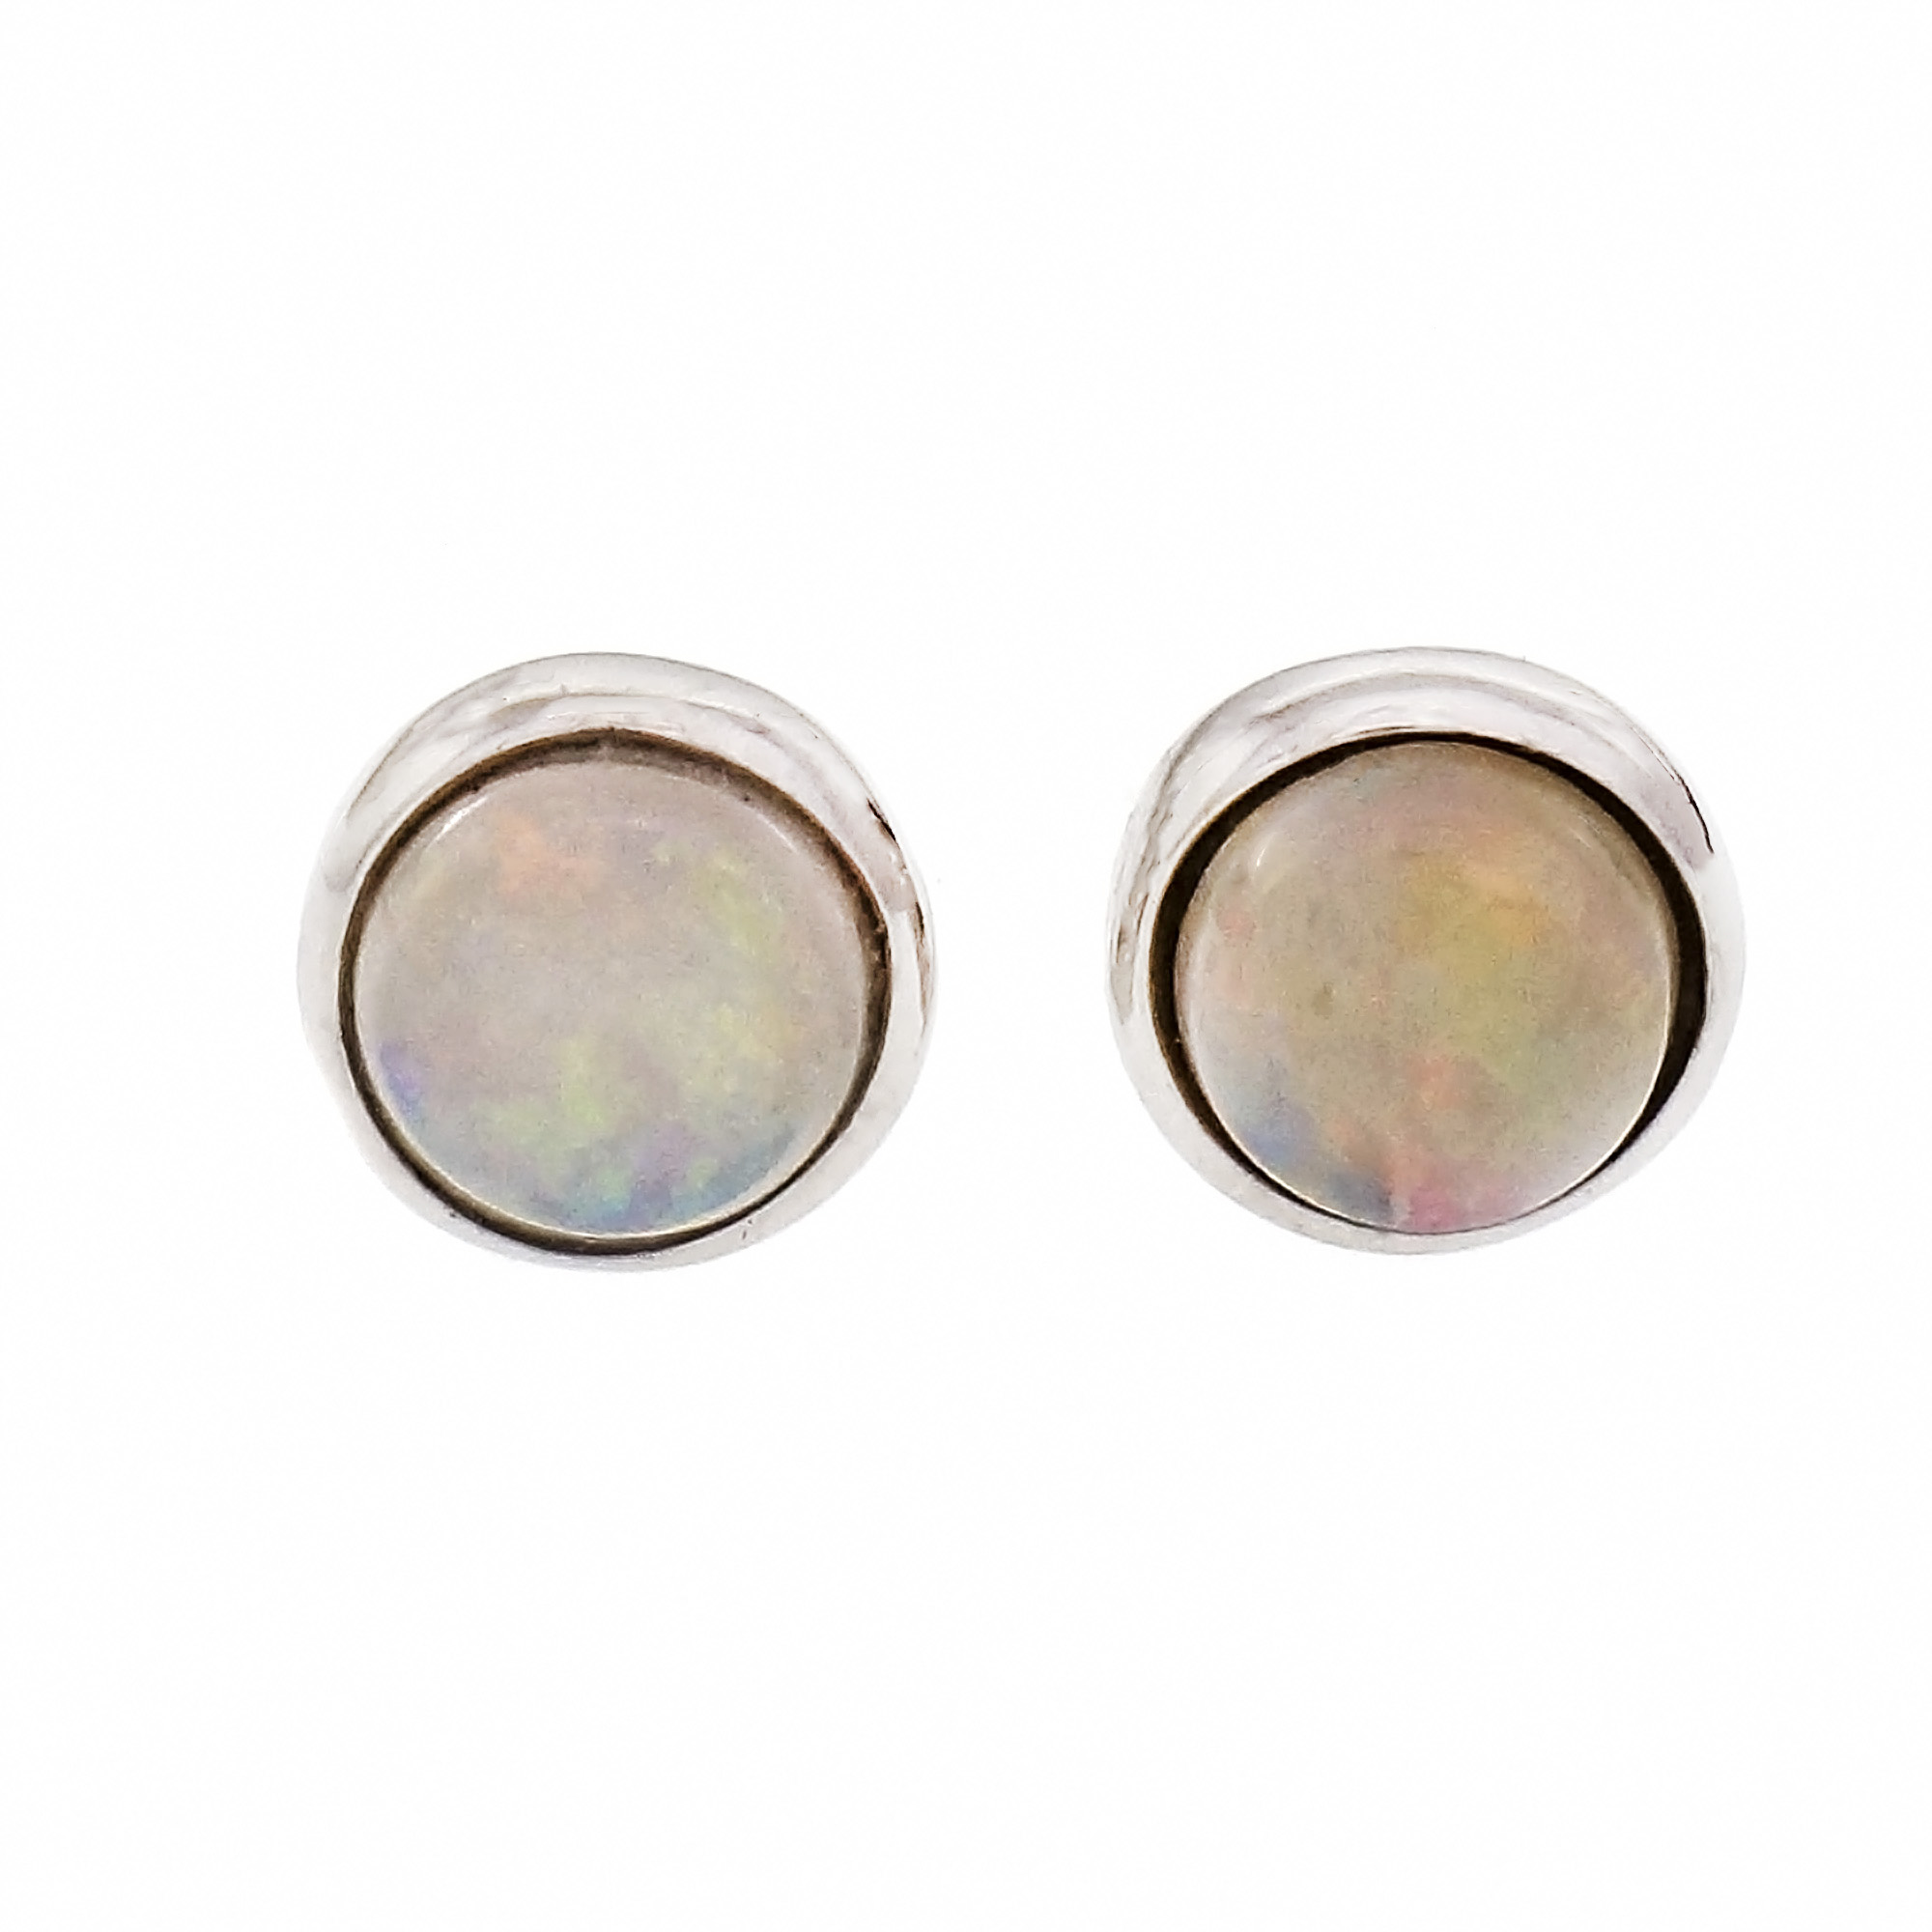 Details About Round Opal Stud Earrings 14k White Gold